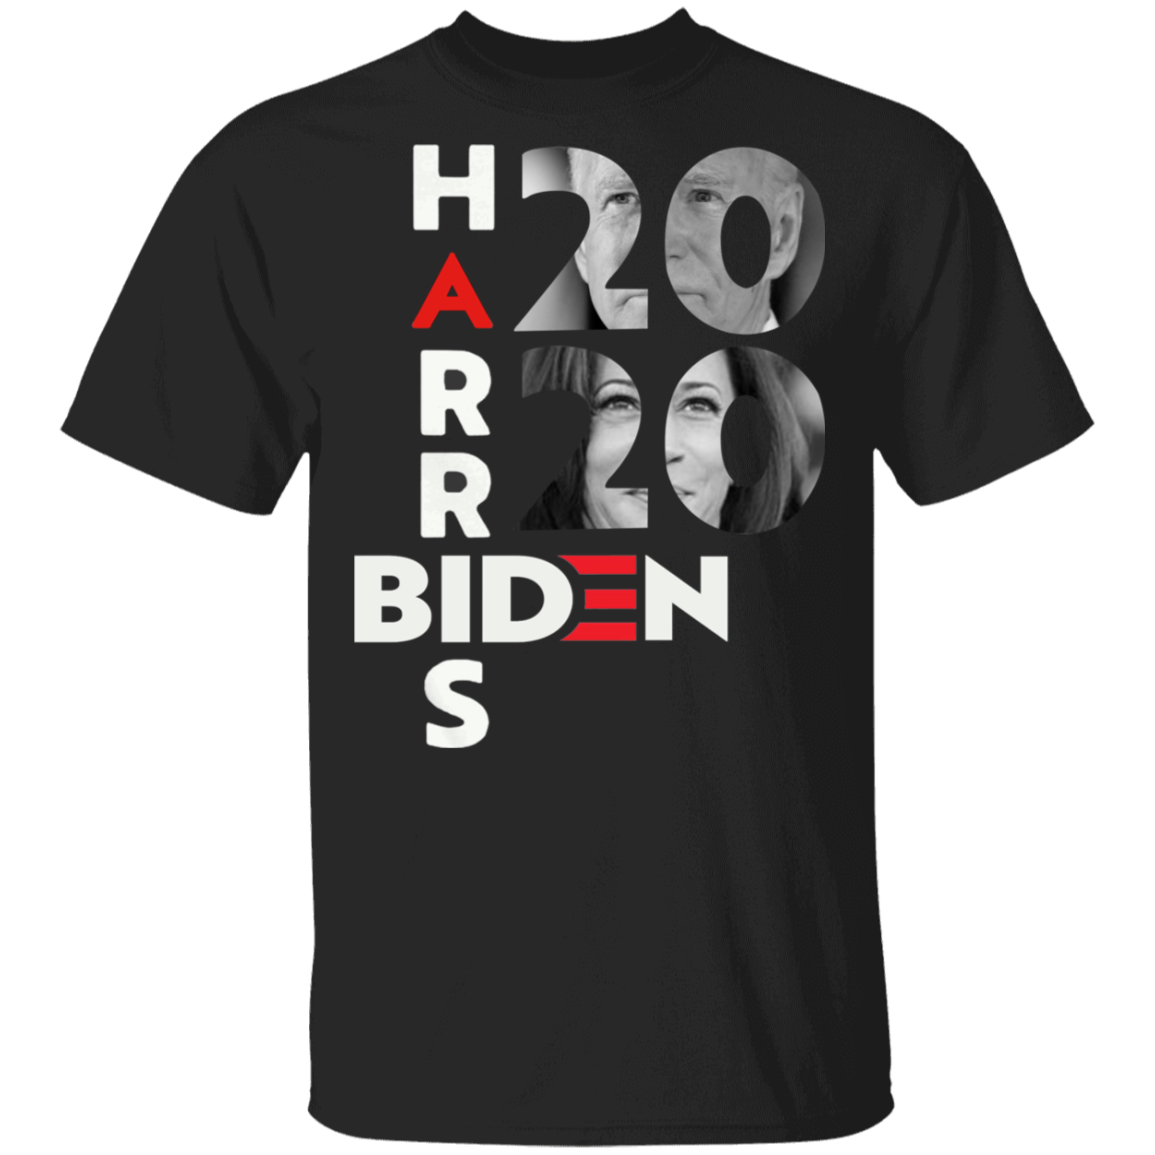 Biden Harris 2020 T-Shirt Vote For Joe Biden Victory U.S President Political Election Campaign